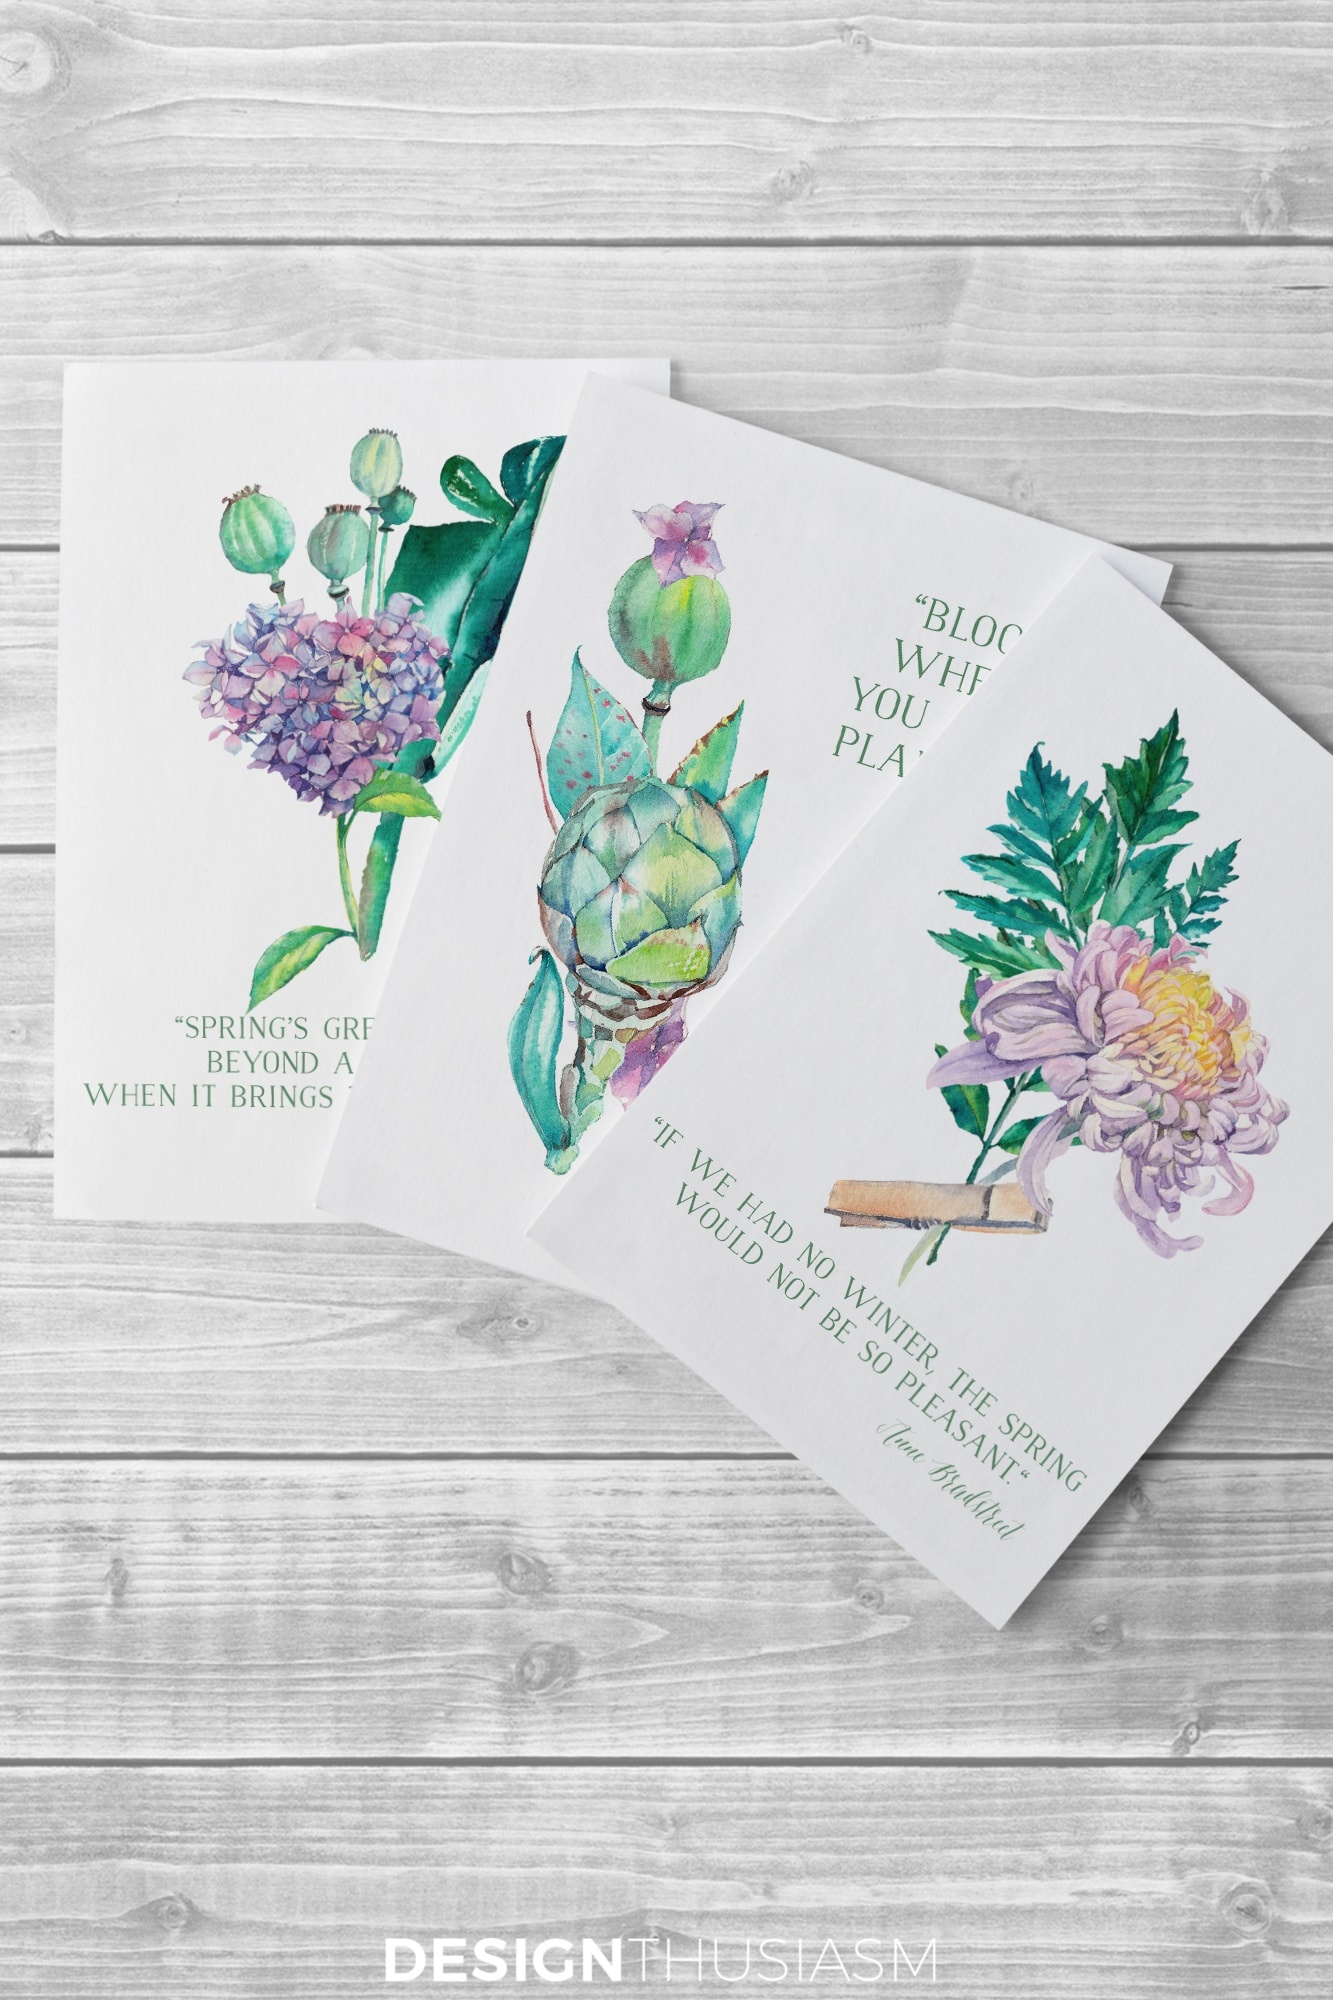 Free Printable Art For Spring: Watercolor Flowers For Diy Wall Decor - Free Printable Decor